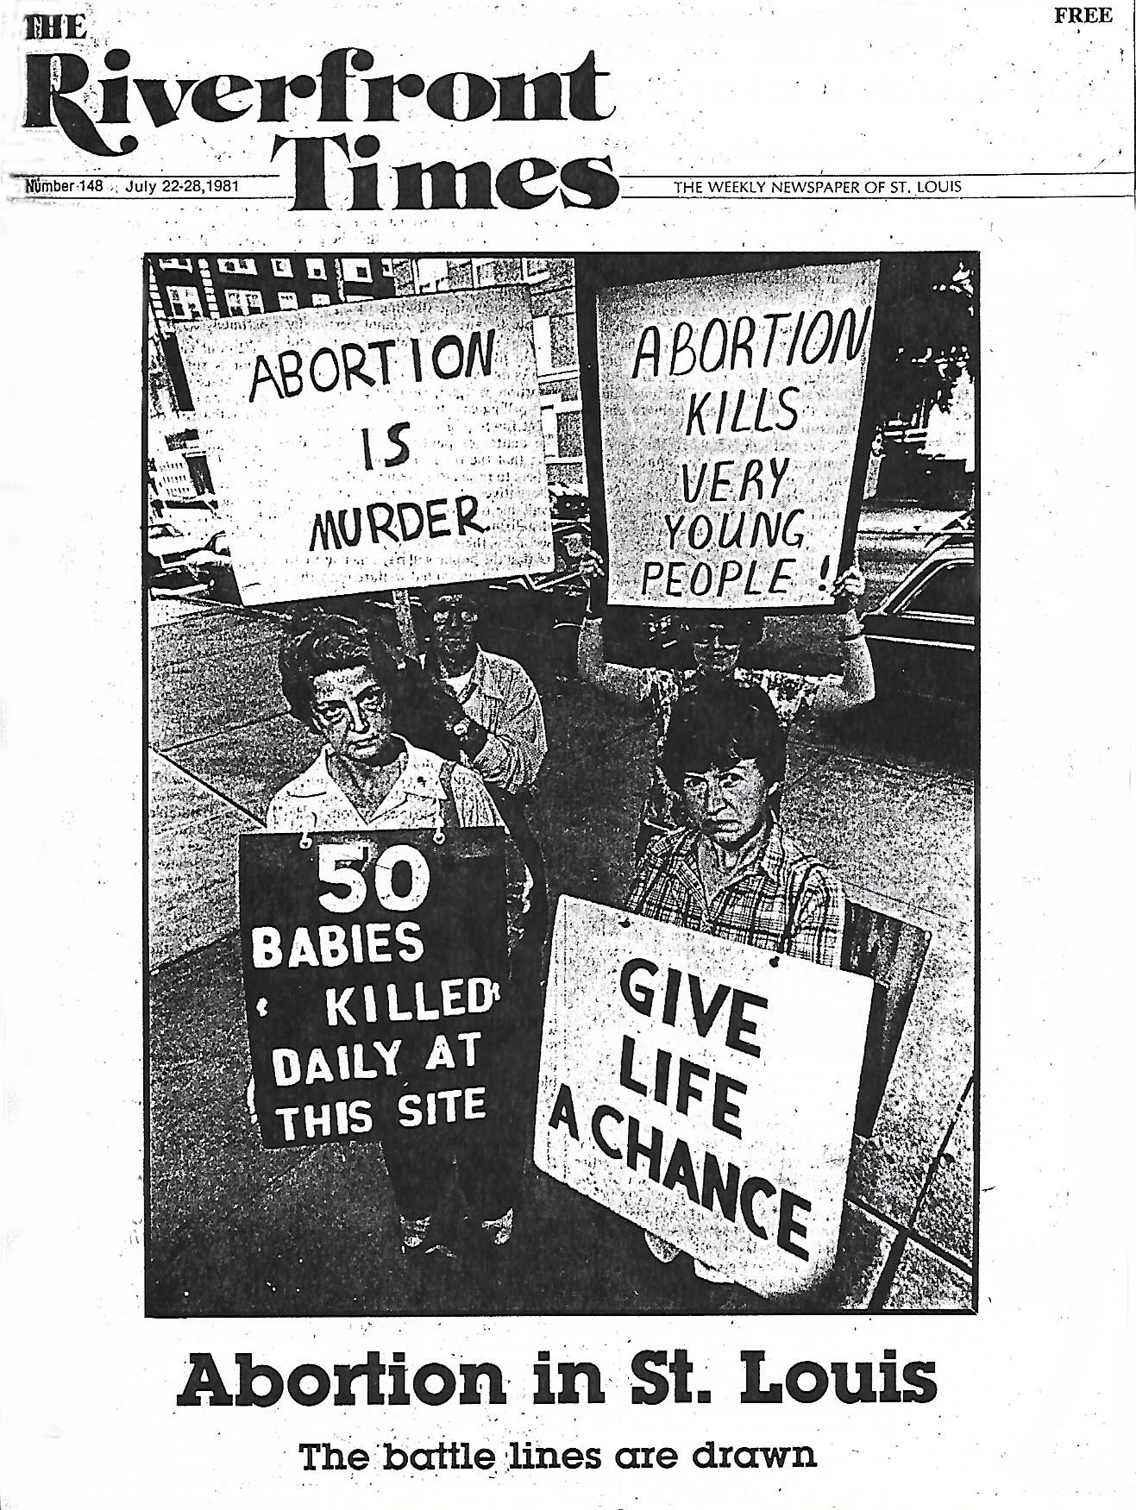 07-22-1981 abortion small